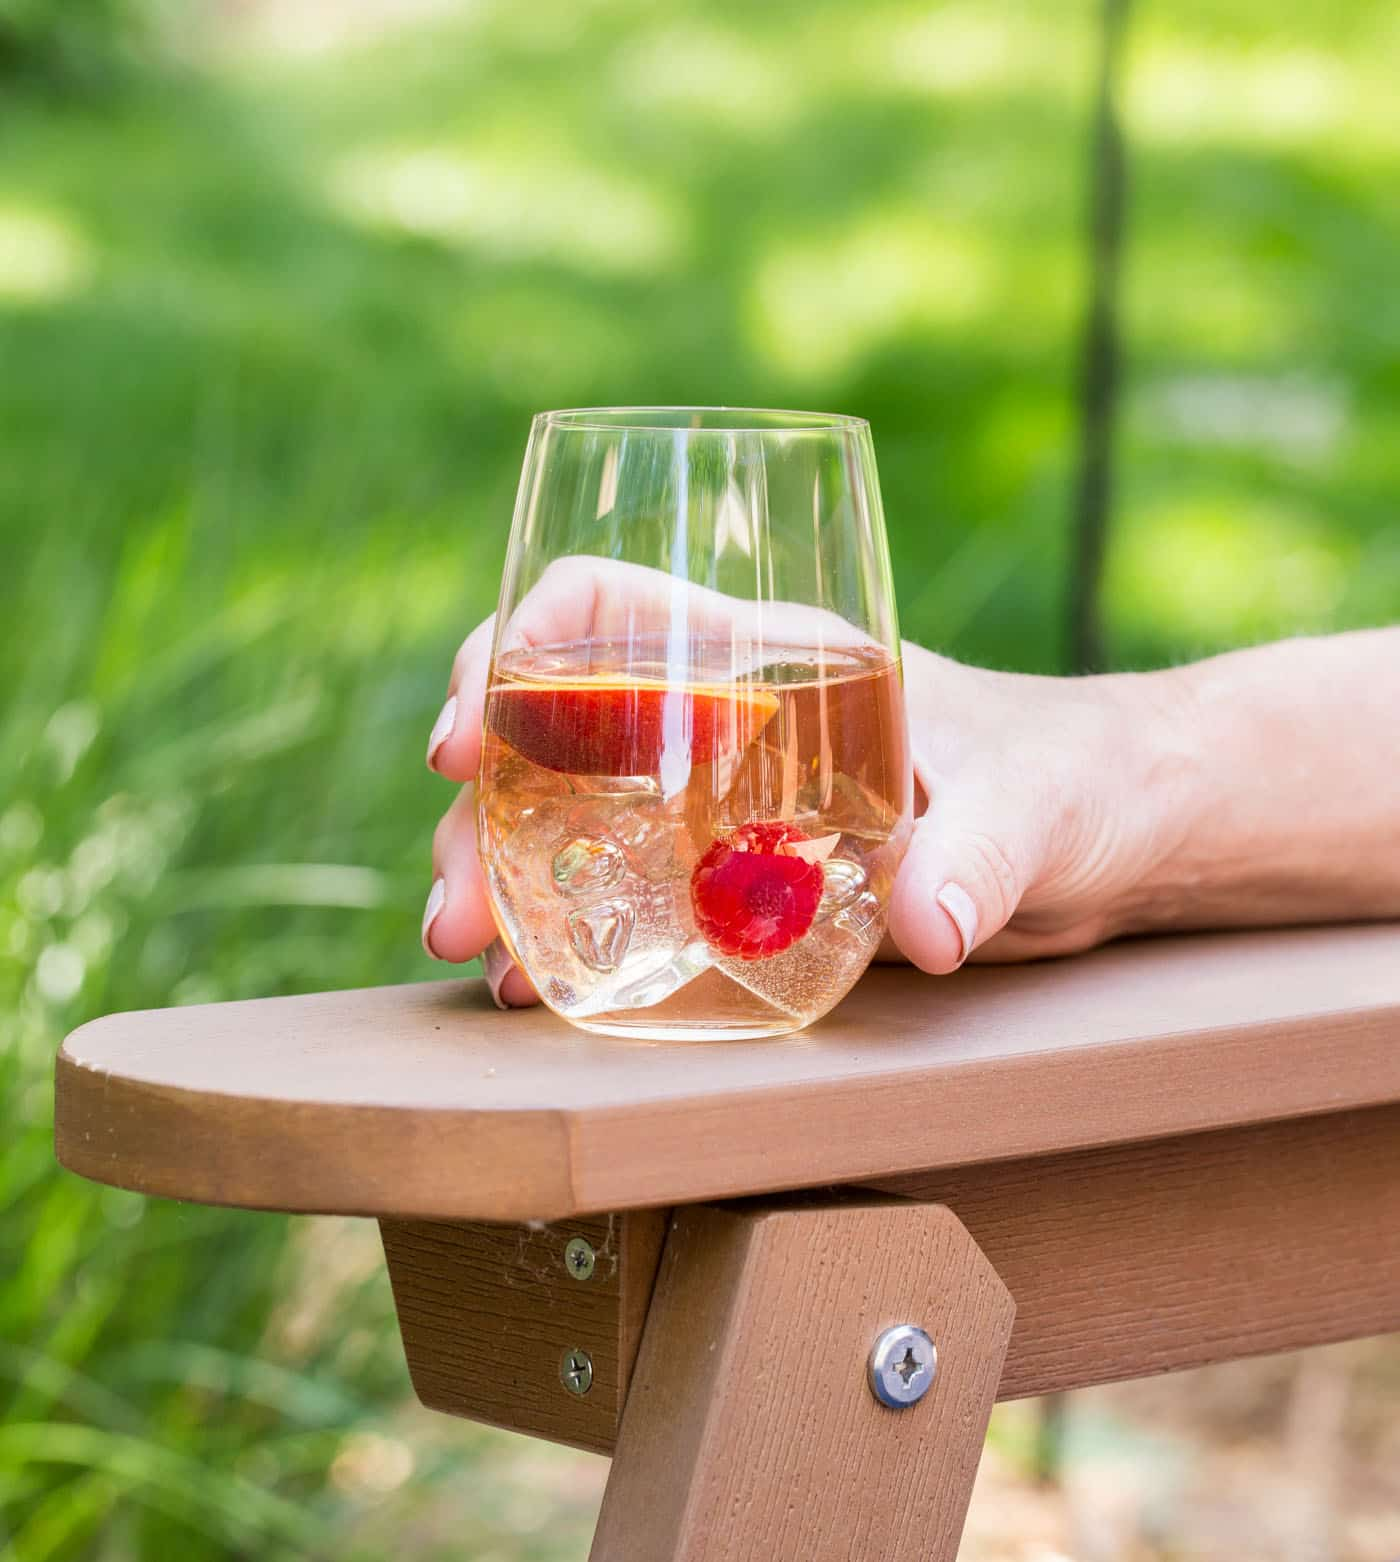 Glass of Peach Rosé Sangria with peach slices and raspberries floating in the glass. The glass is outside sitting on the arm of an adirondack chair.